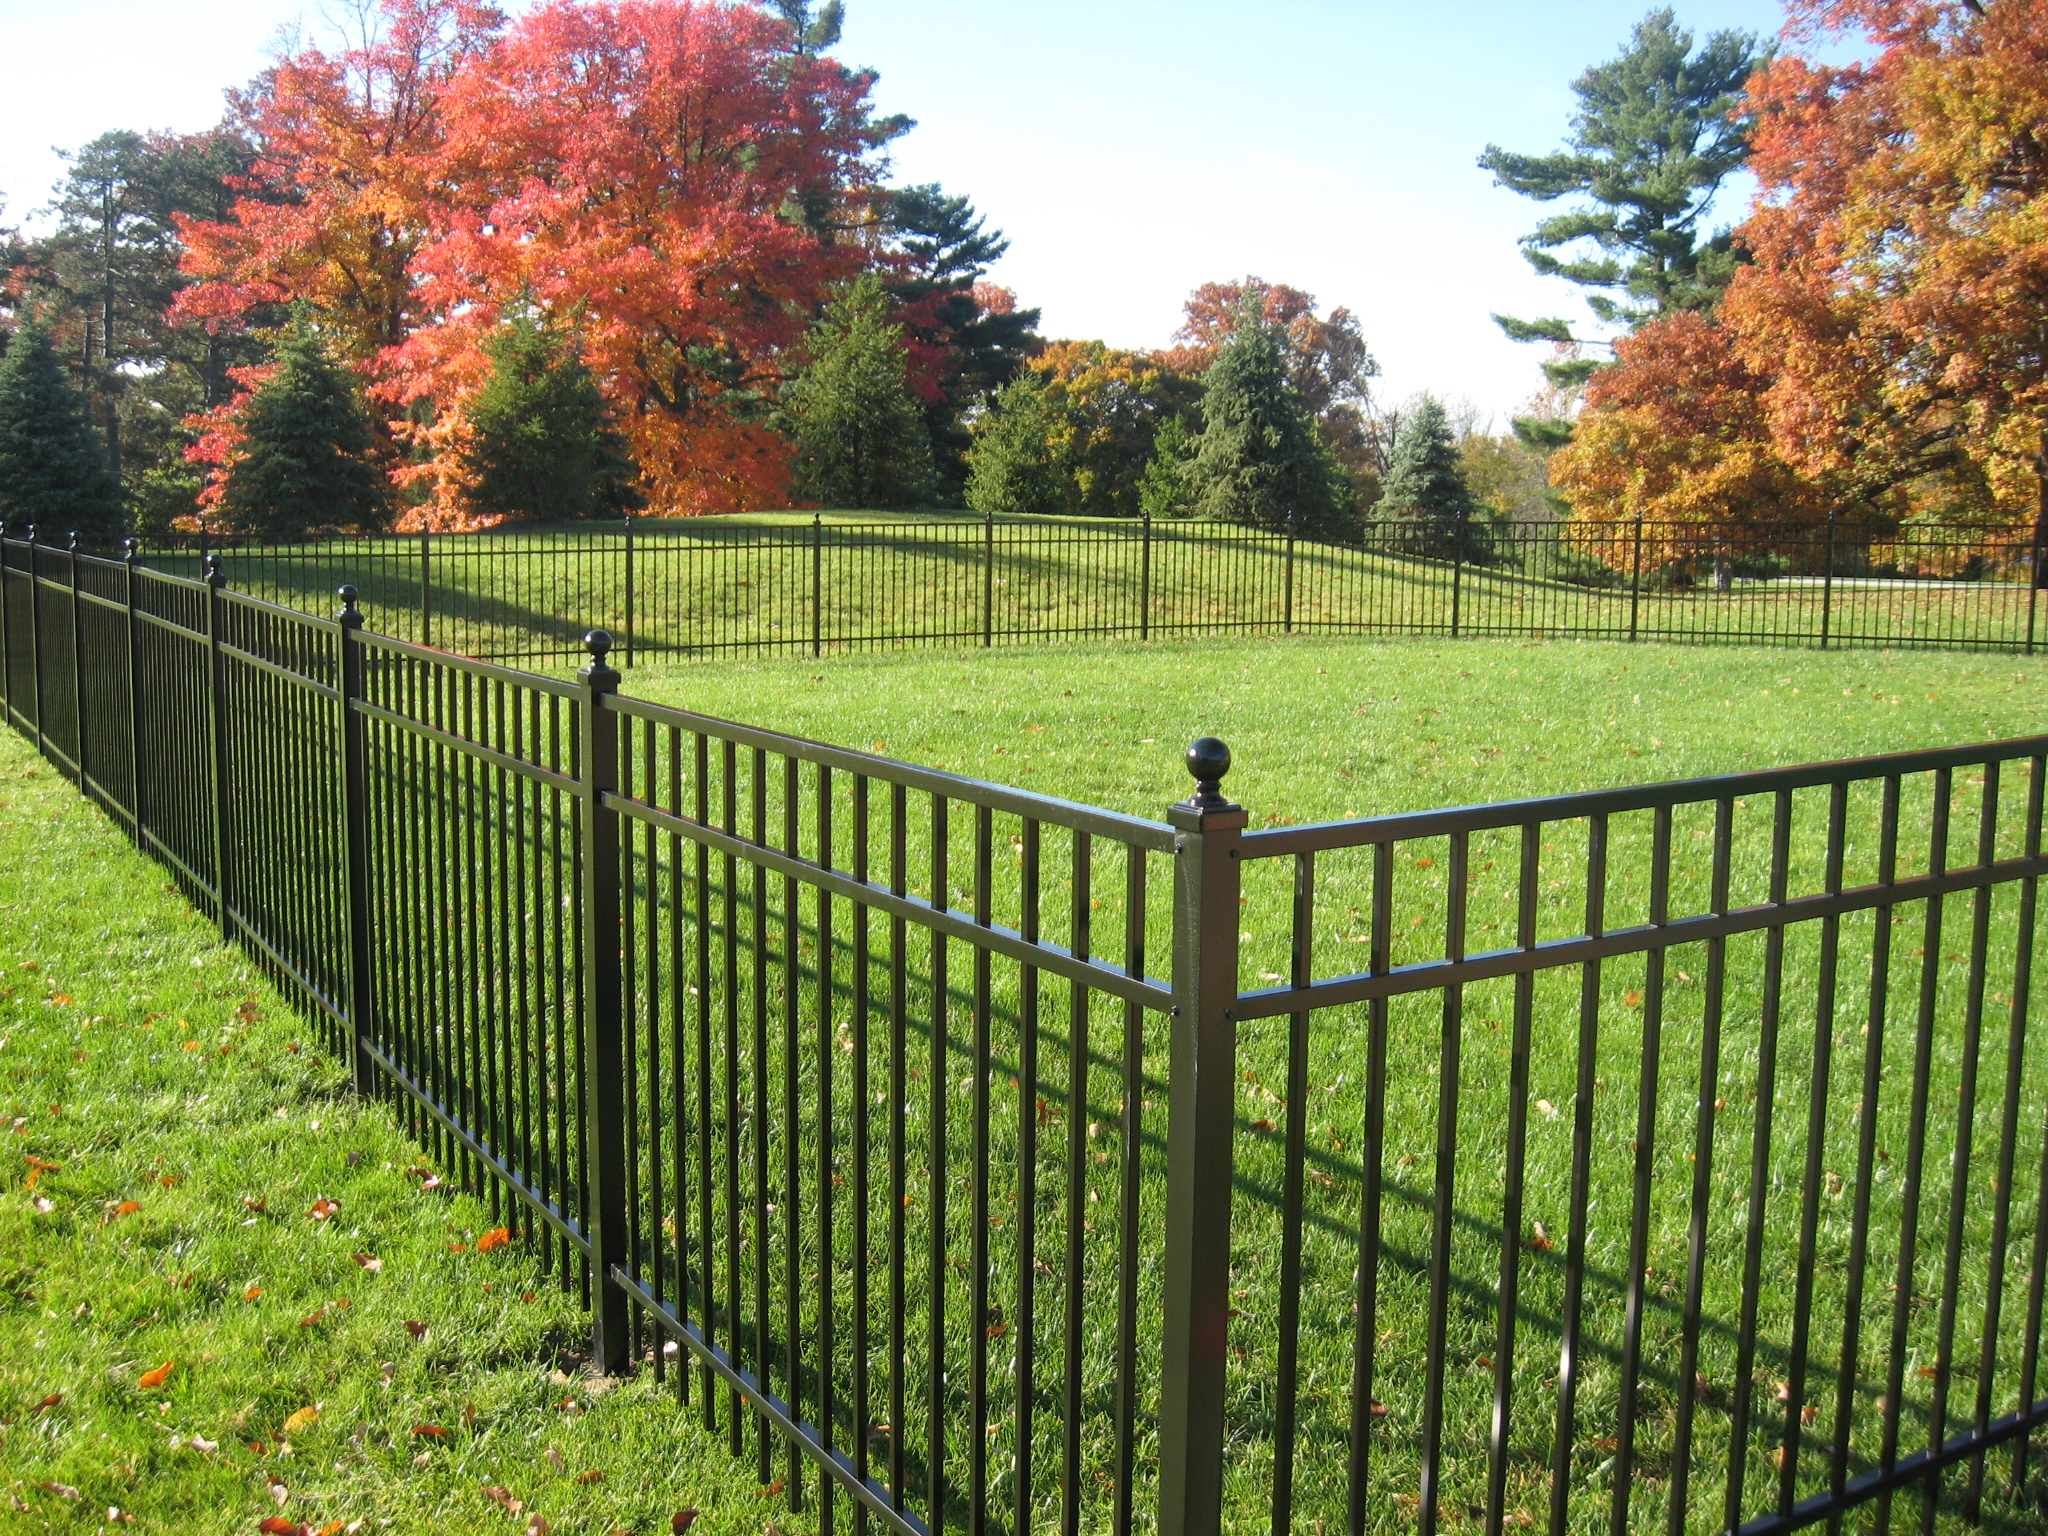 Pioneer fence co milford oh 45150 angies list for Barriere de piscine